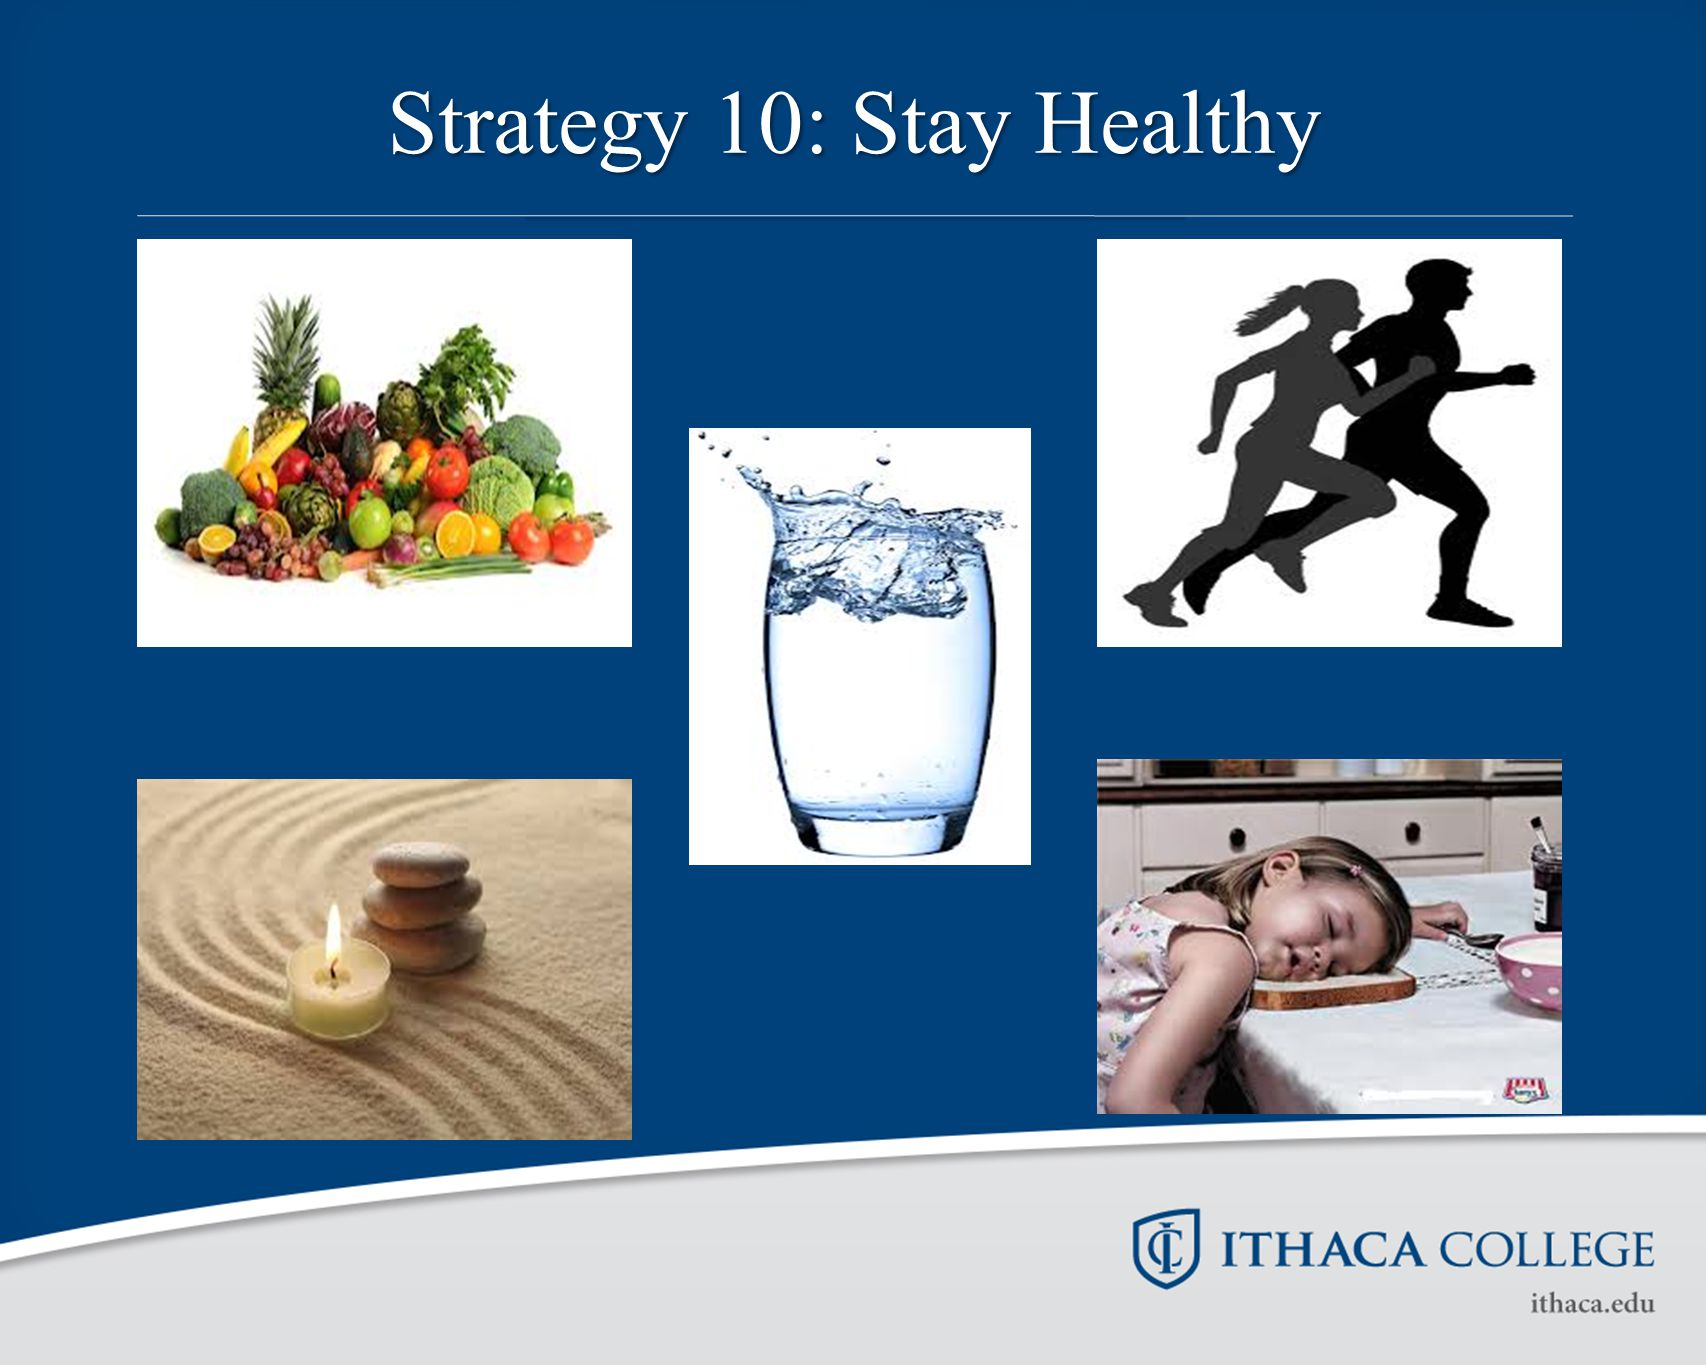 Strategy 10: Stay Healthy